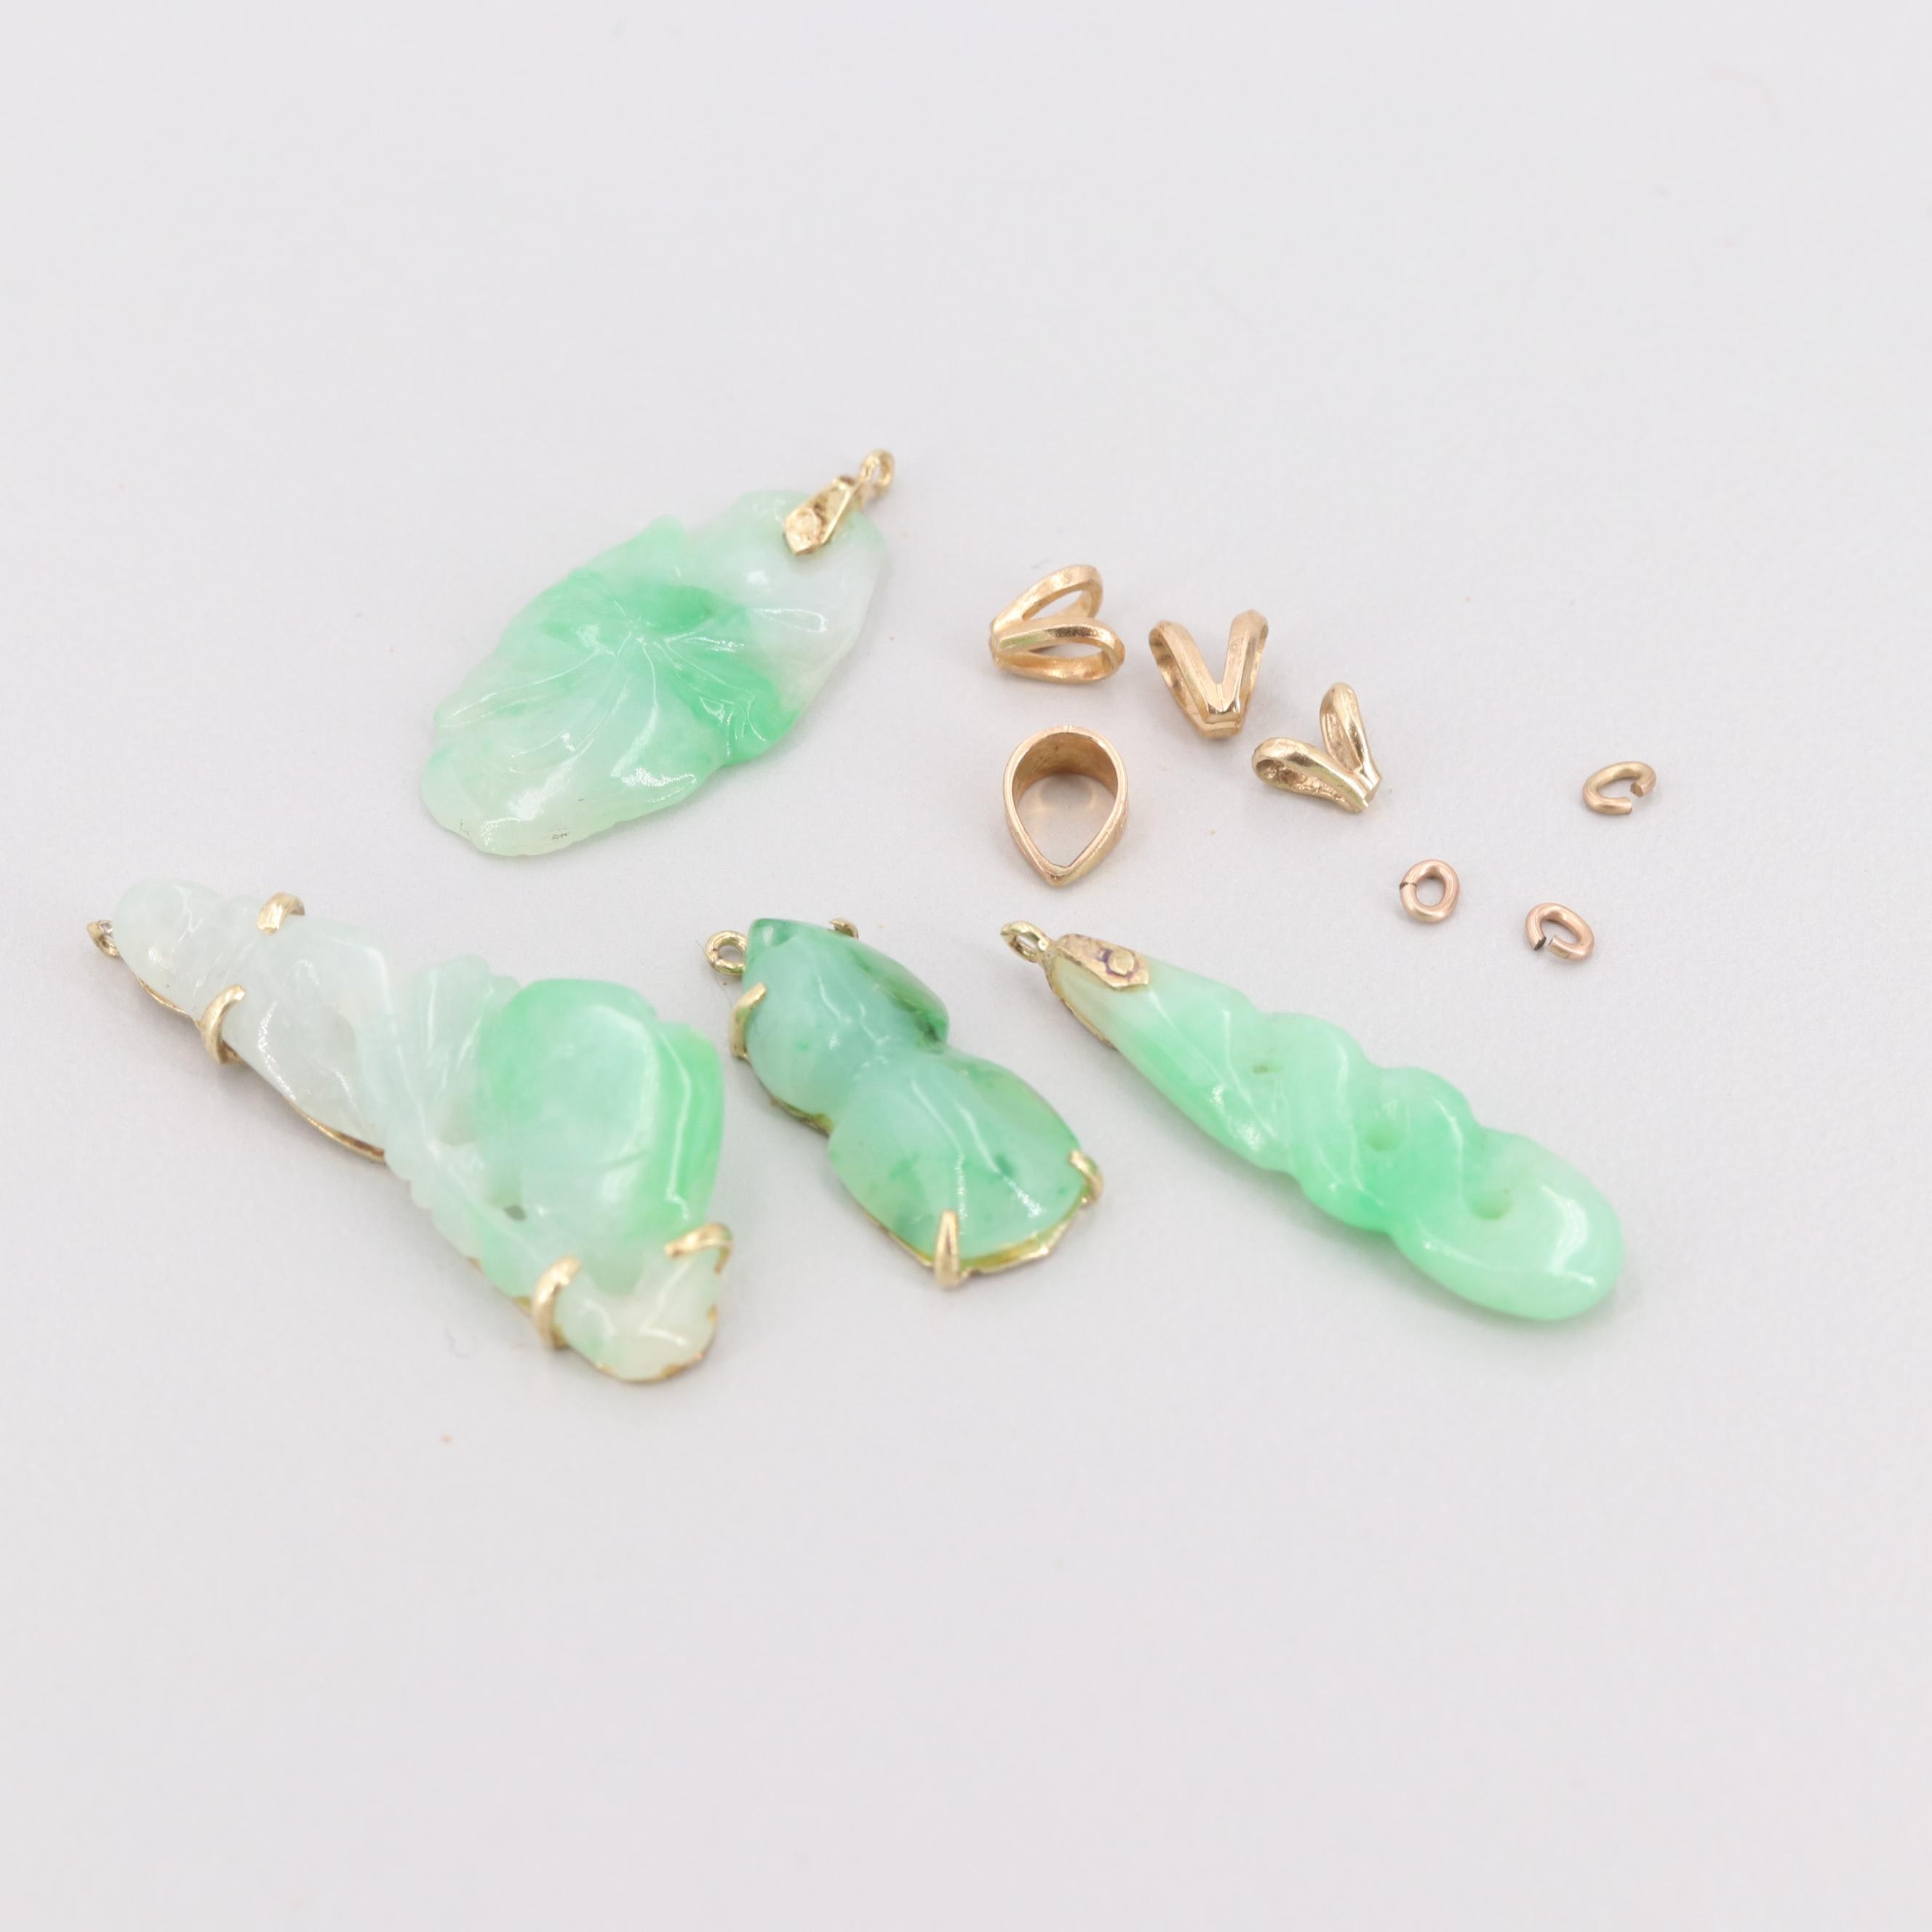 14K Yellow Gold and Gold Tone Jadeite Scrap Lot